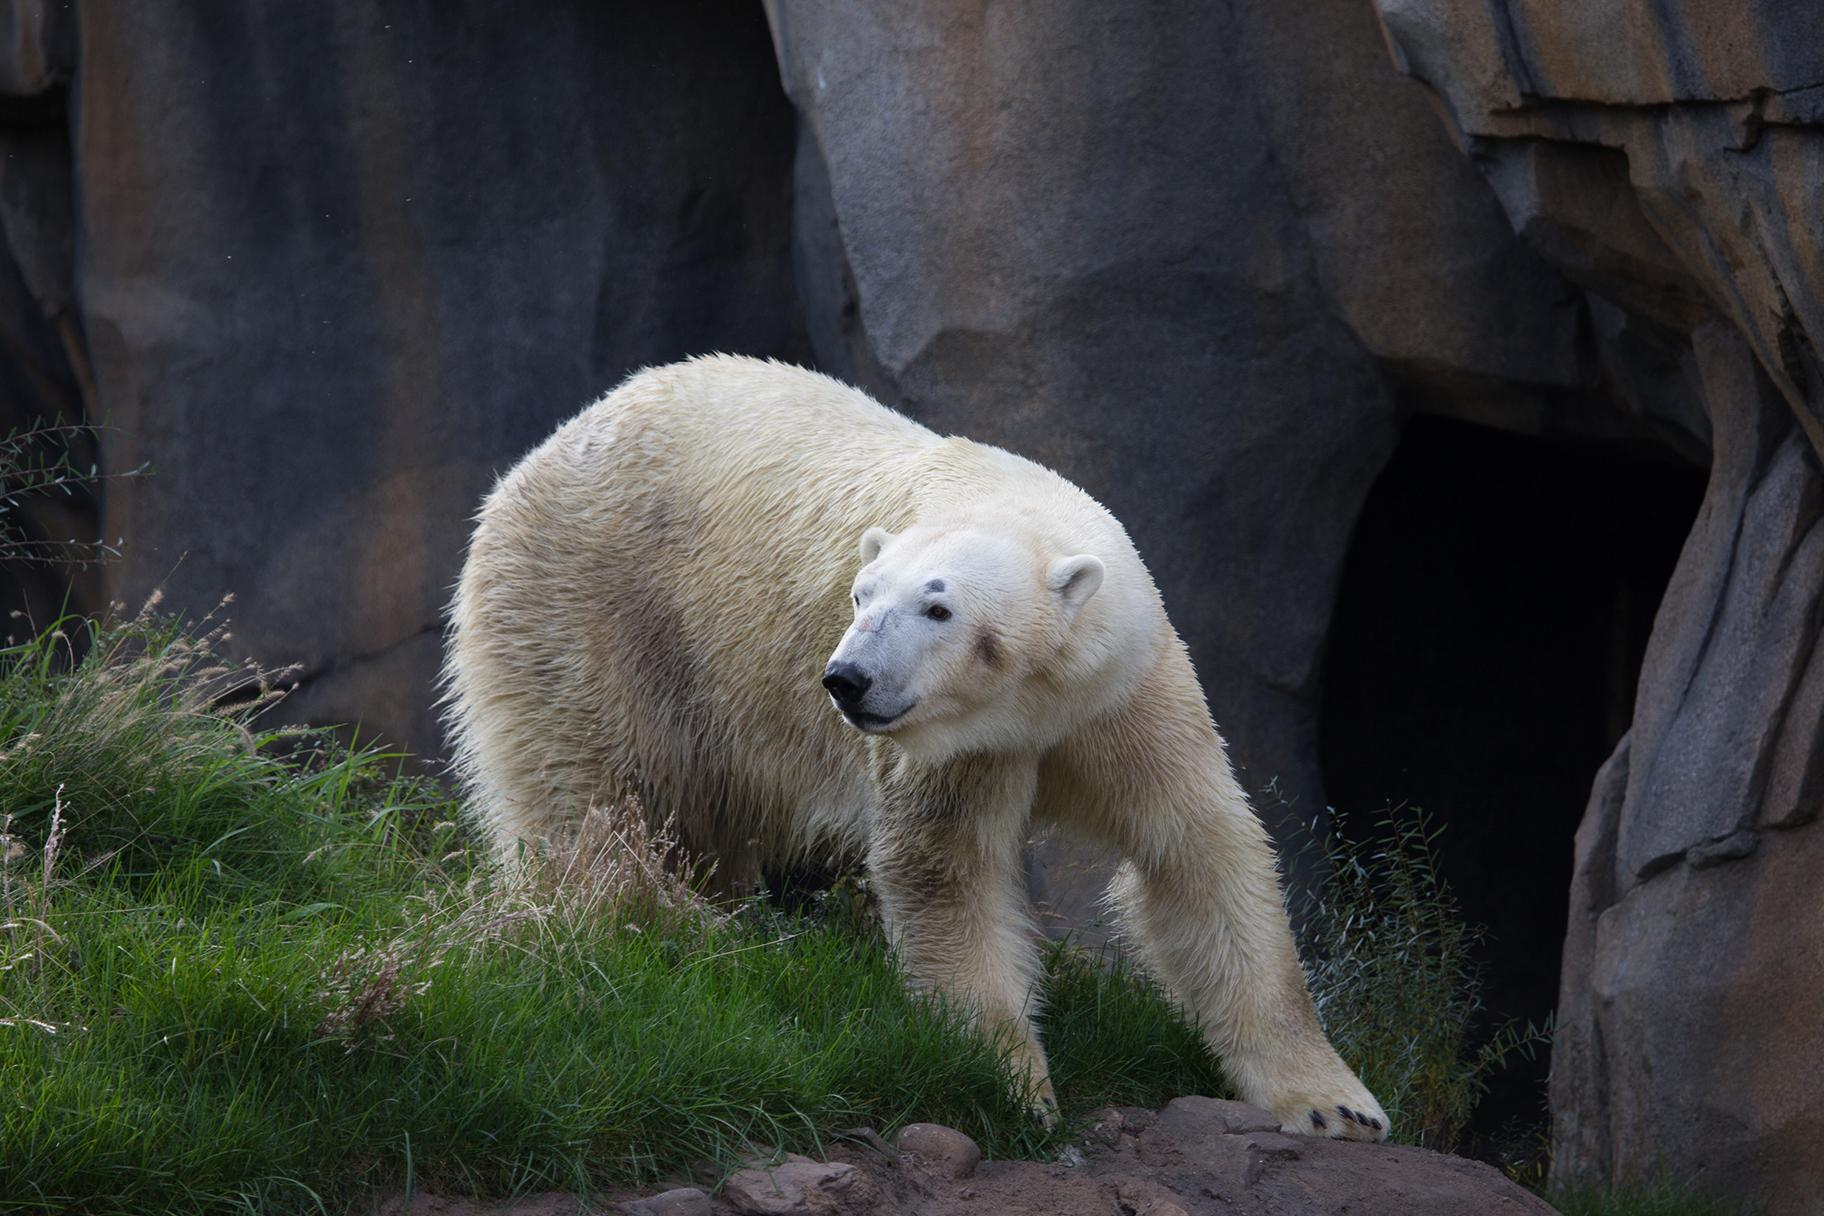 Siku, a male polar bear at Lincoln Park Zoo, pictured in 2016. (Julia Fuller / Lincoln Park Zoo)